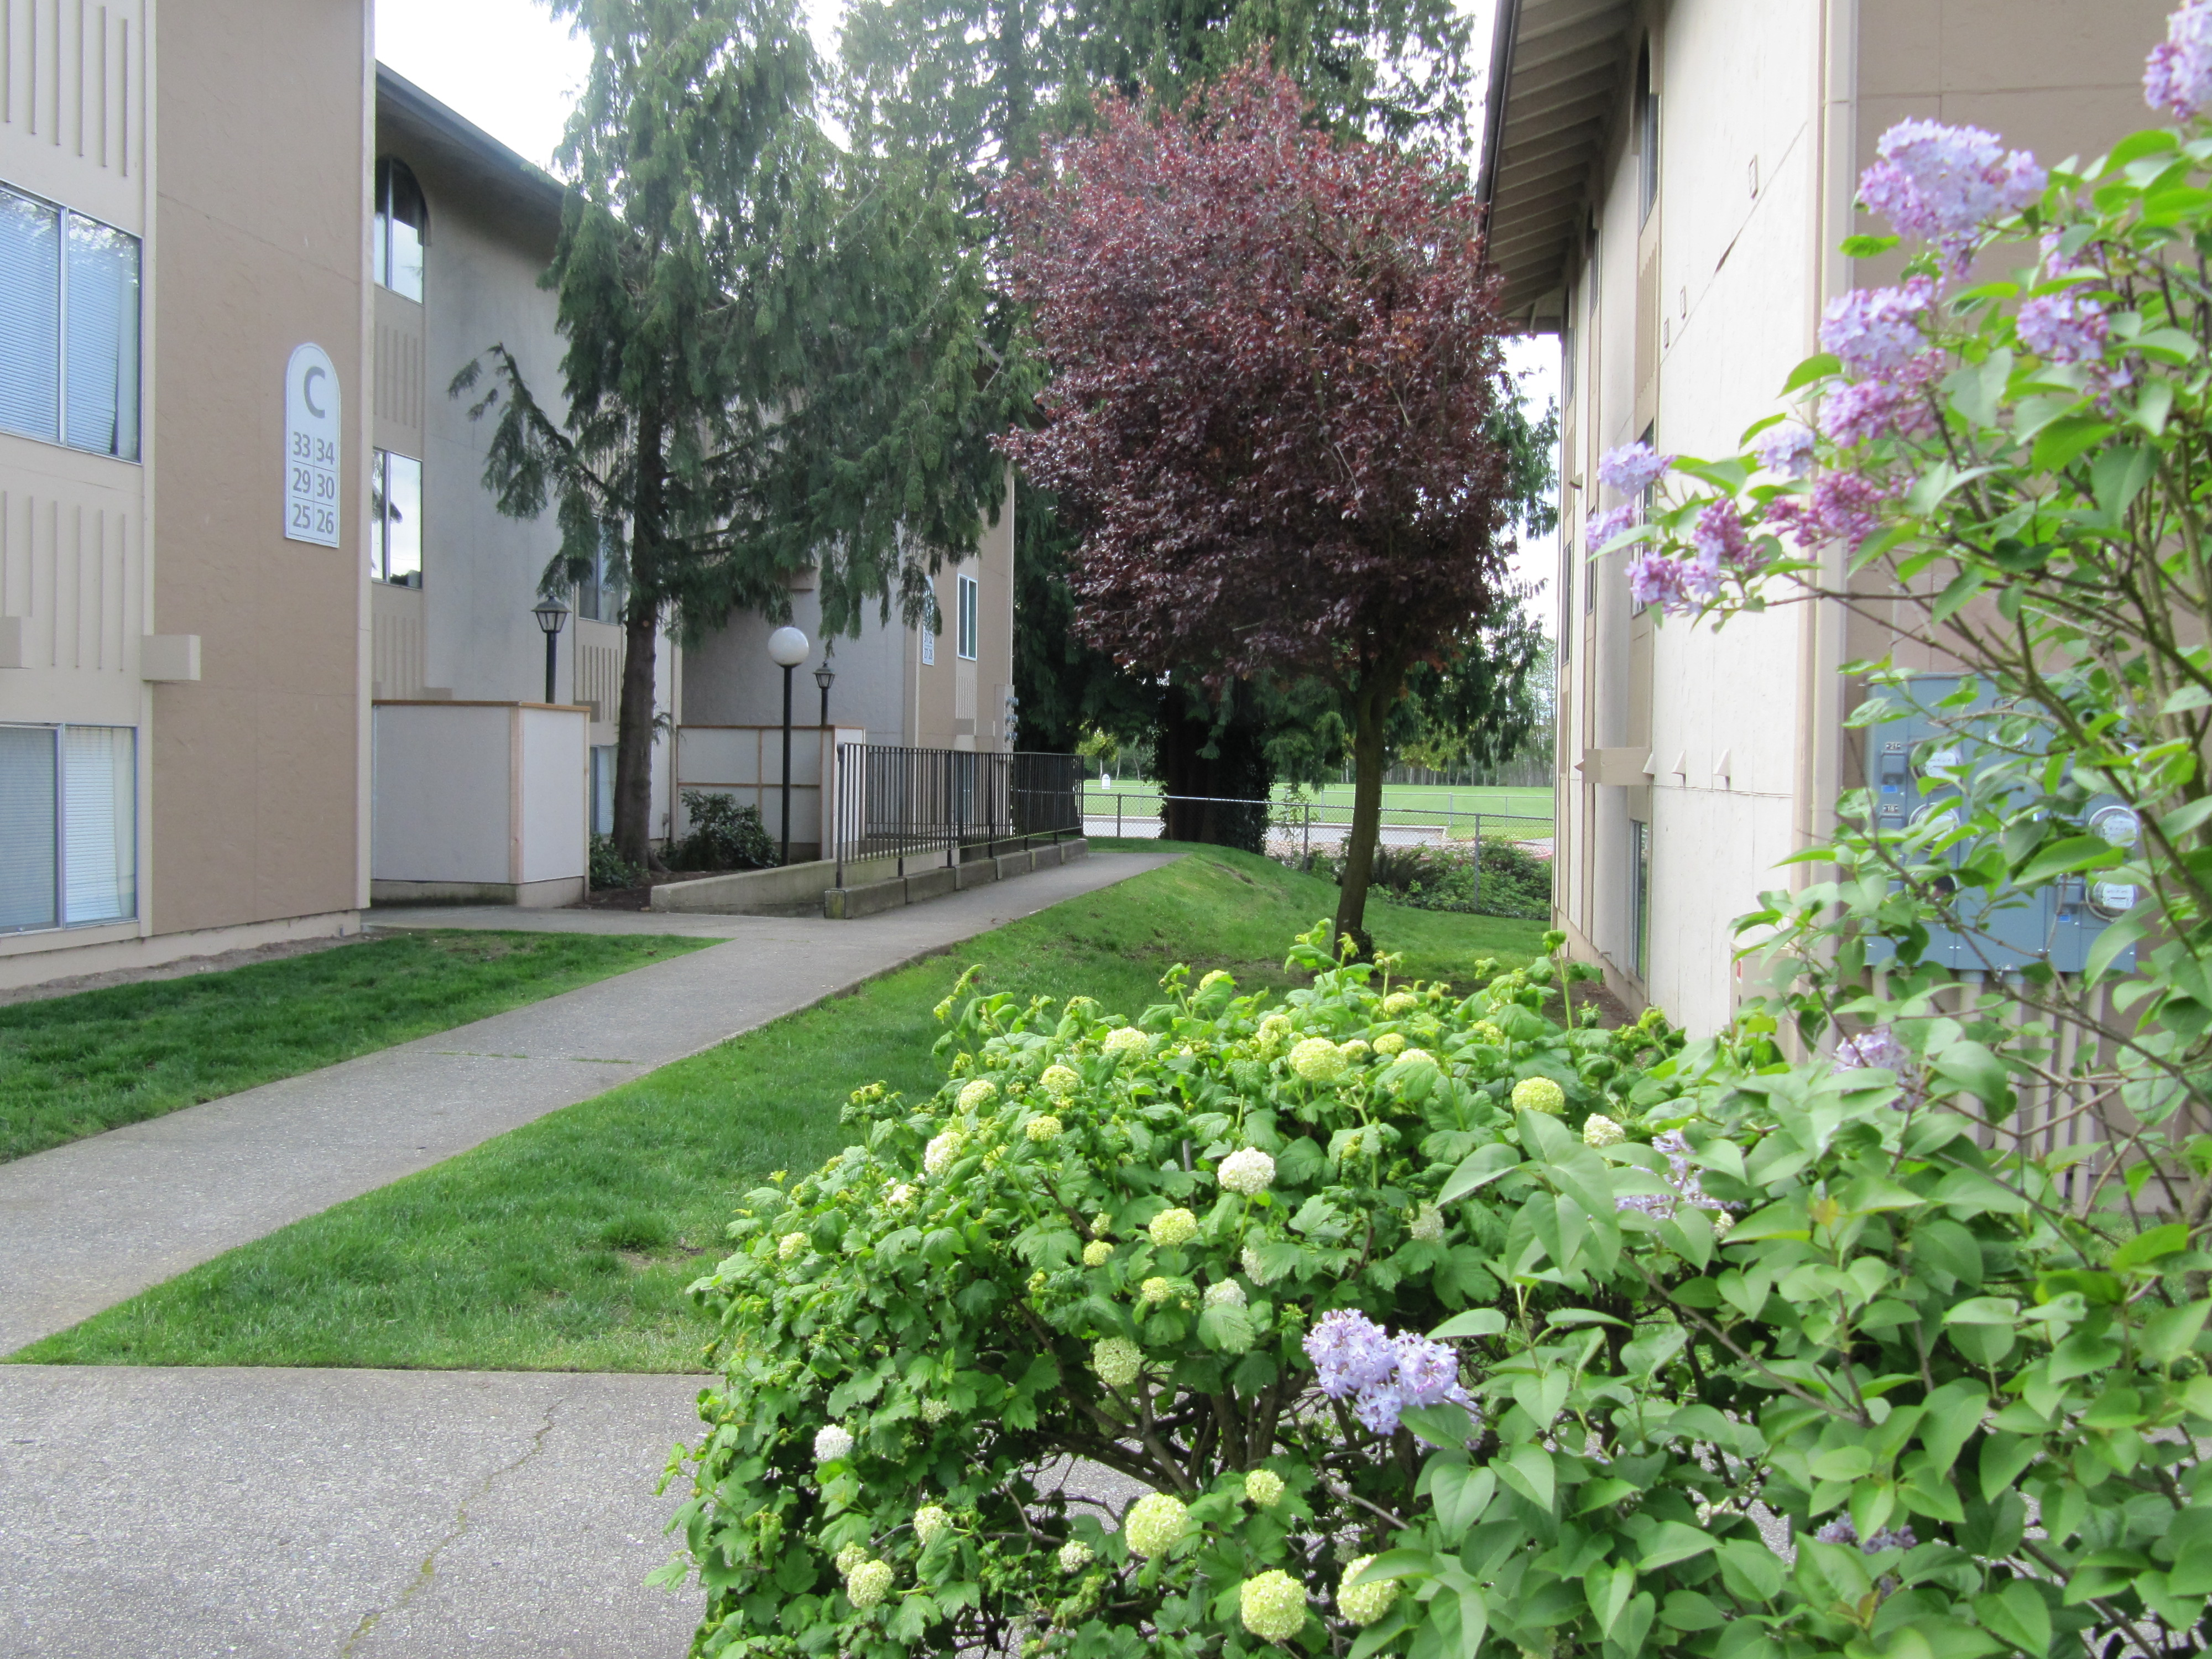 Ordinaire Apartments In Everett/Parkview 1126 W Casino Rd Everett, WA 98204/Everett  Apartments